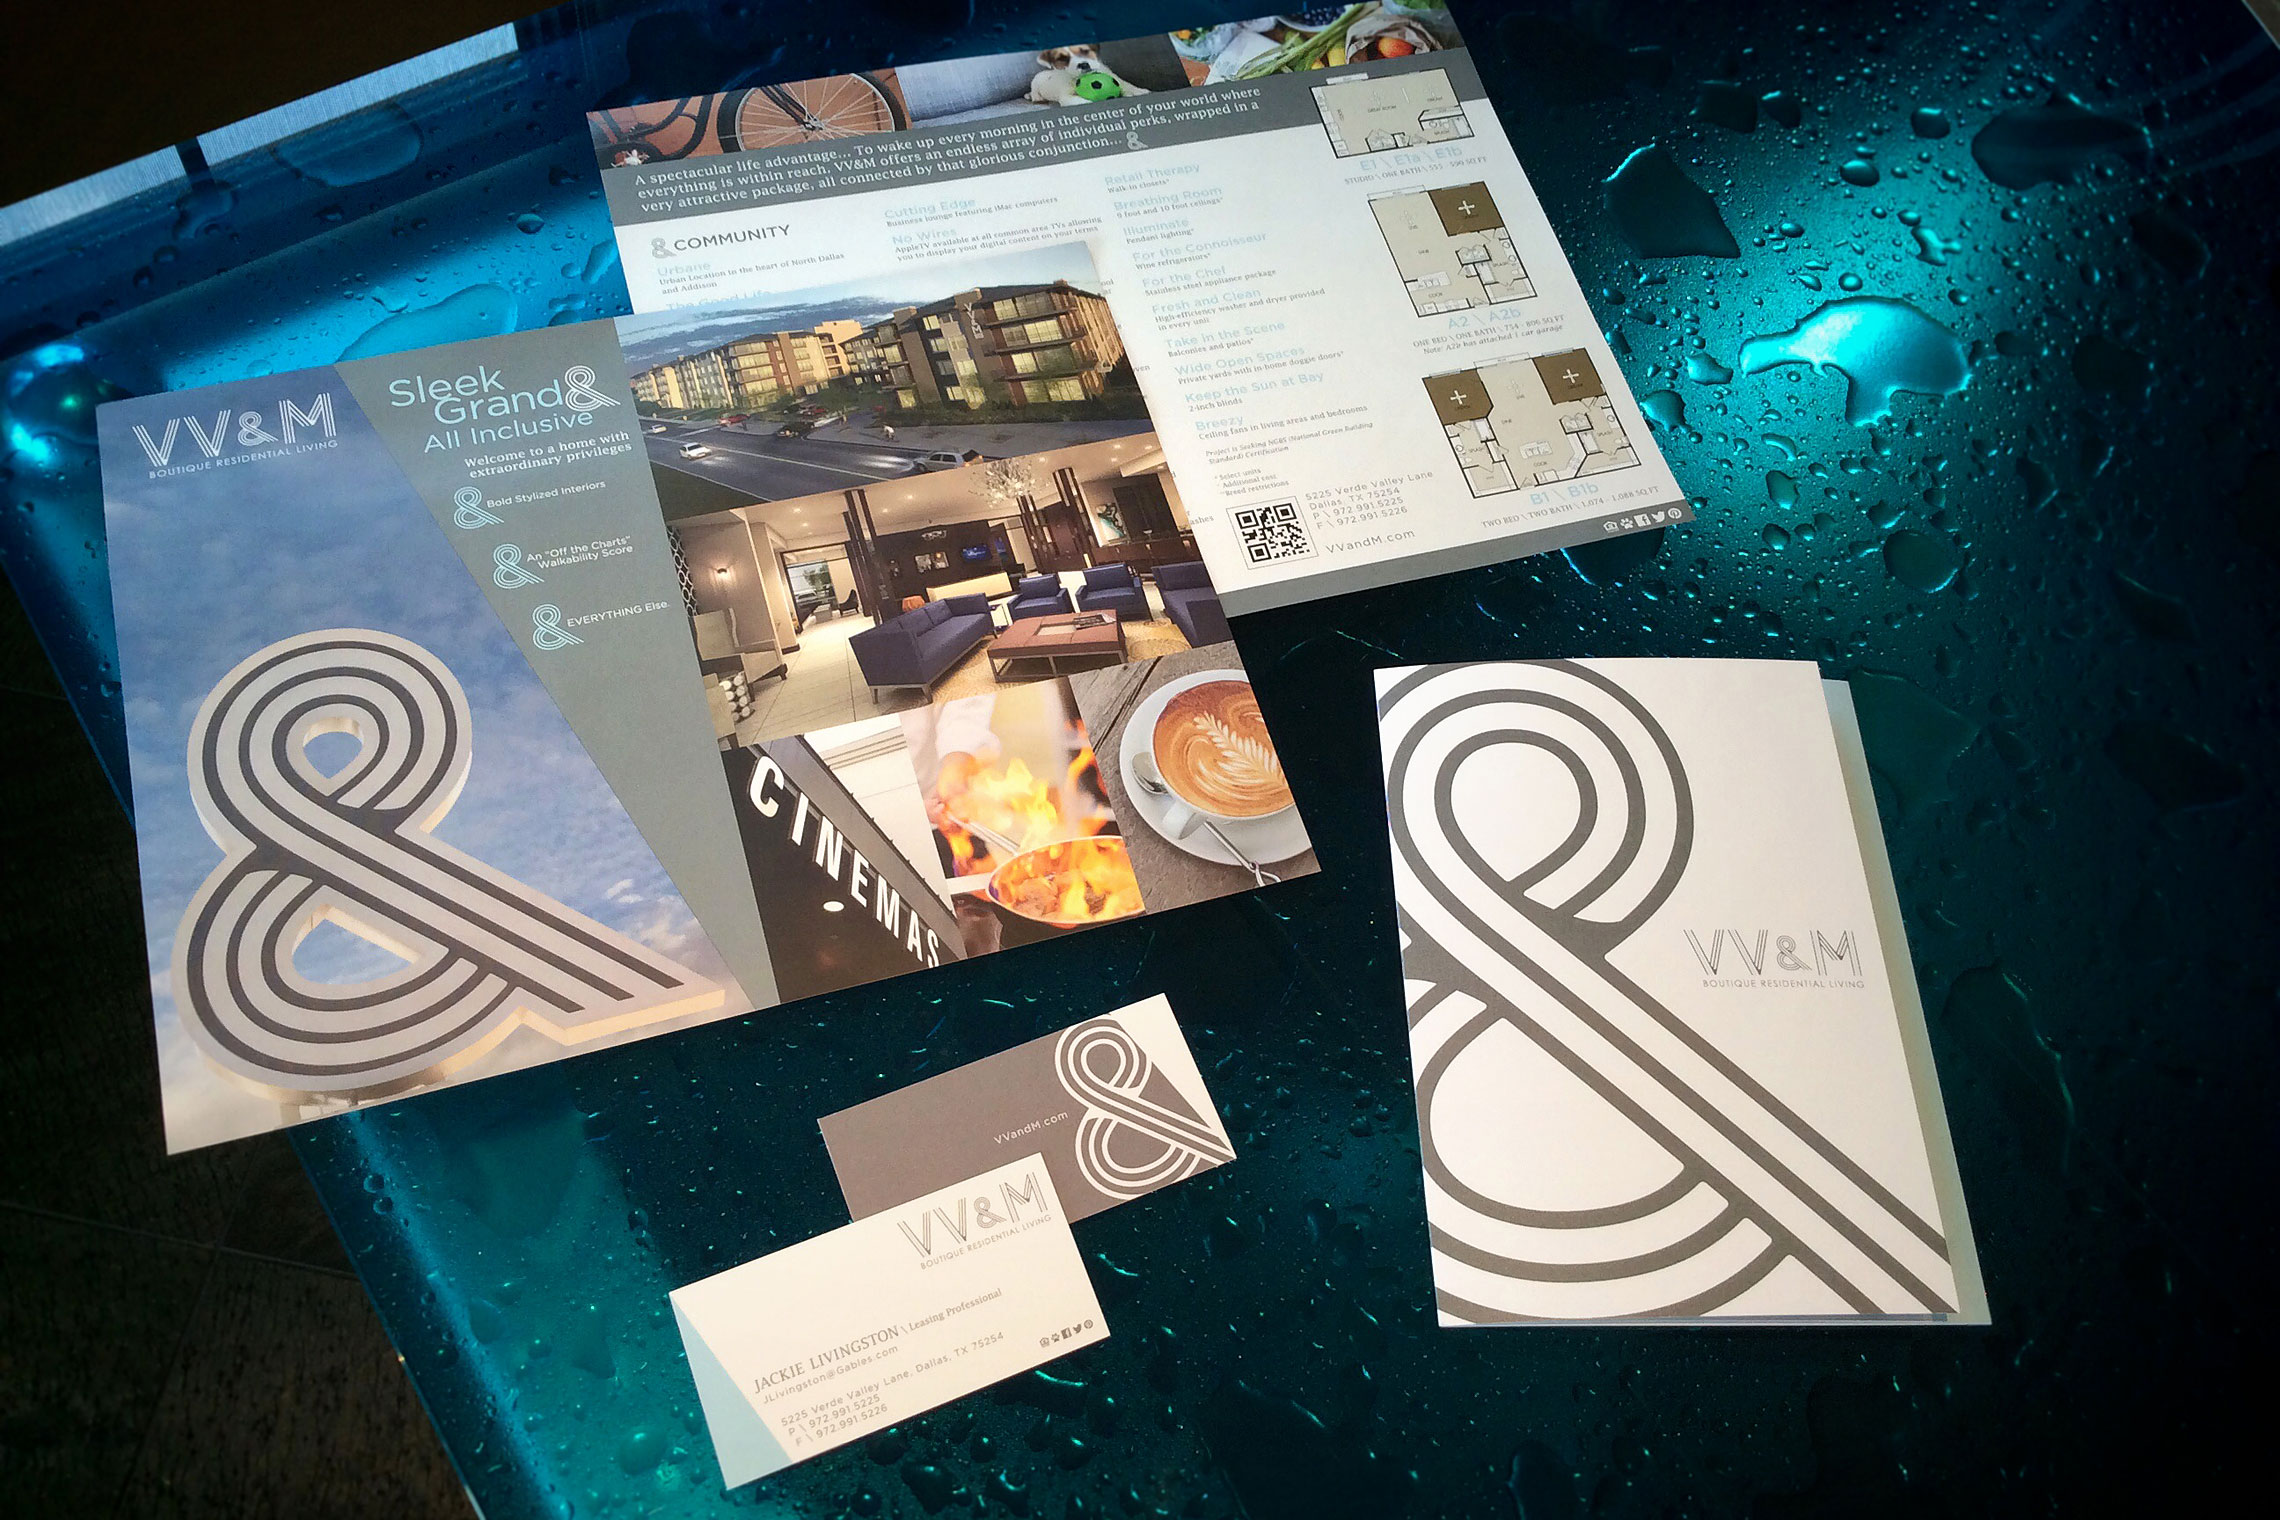 VV&M Boutique Residential Living Custom Collateral - Flyer, Amenity Tri-Panel Brochure and Slim Cut Business Card